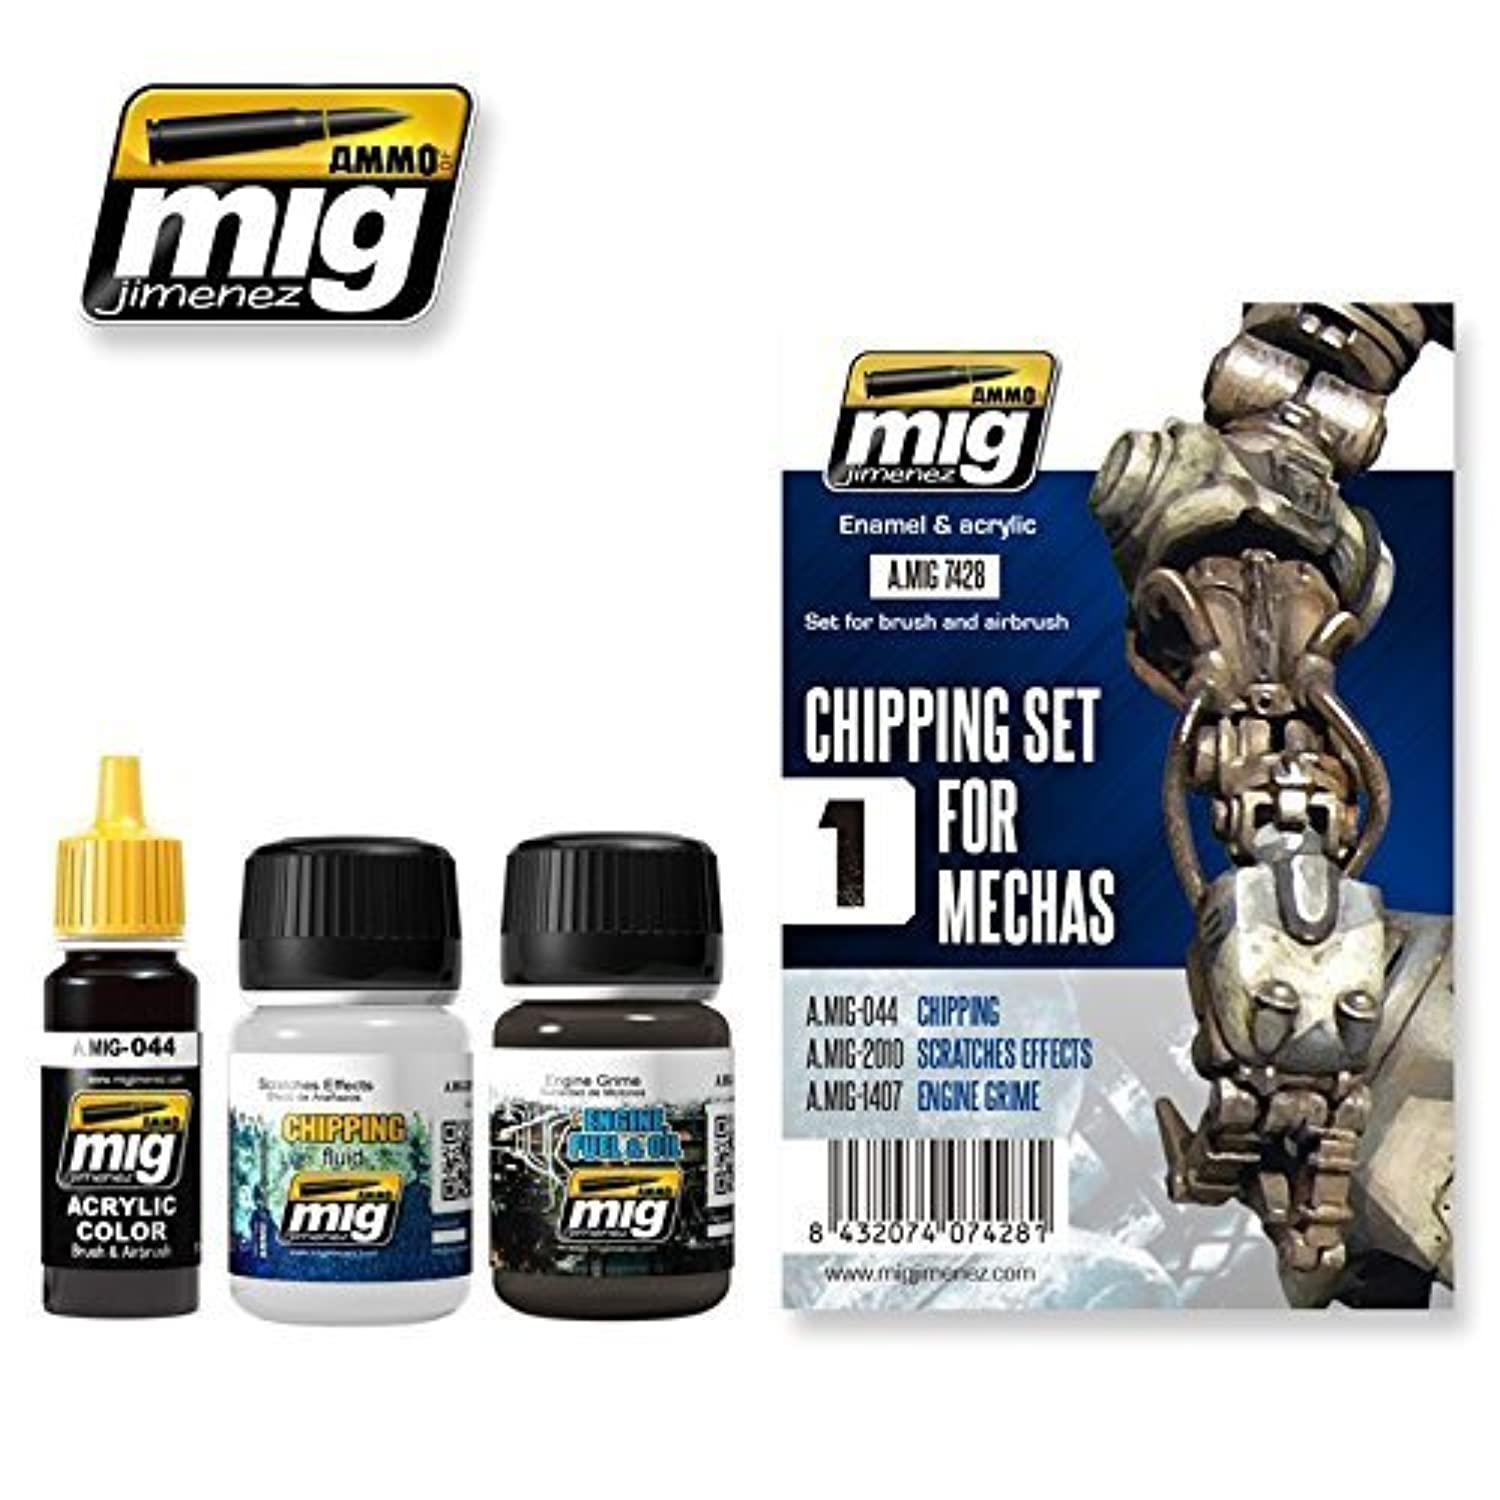 AmmoのMig Jimenez Chipping Set For Mechas 3 Jars # 7428